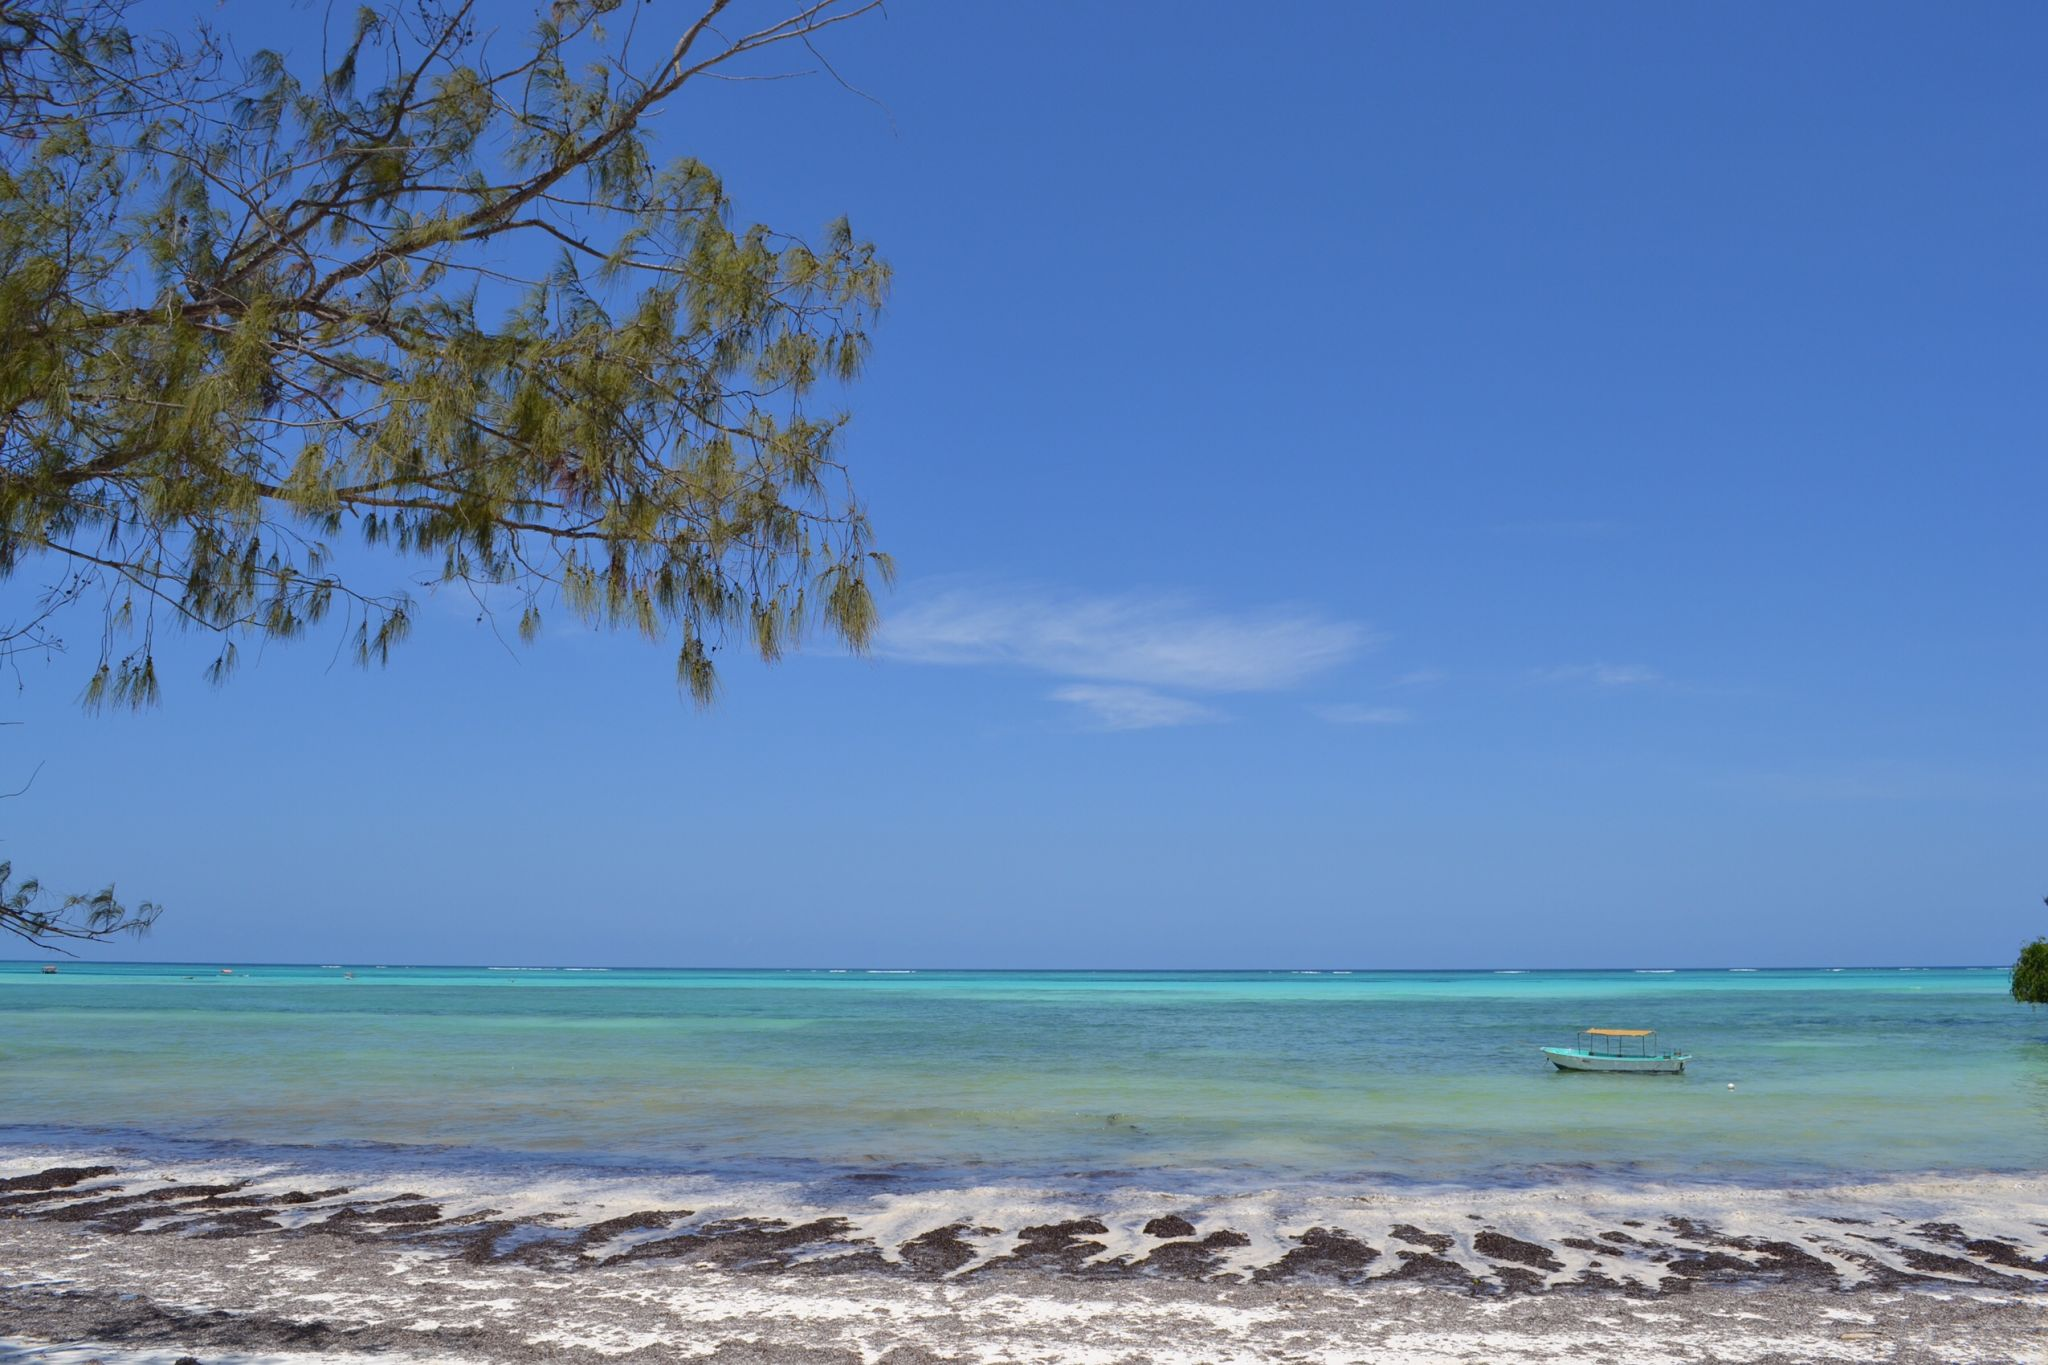 image of beach in Zanzibar